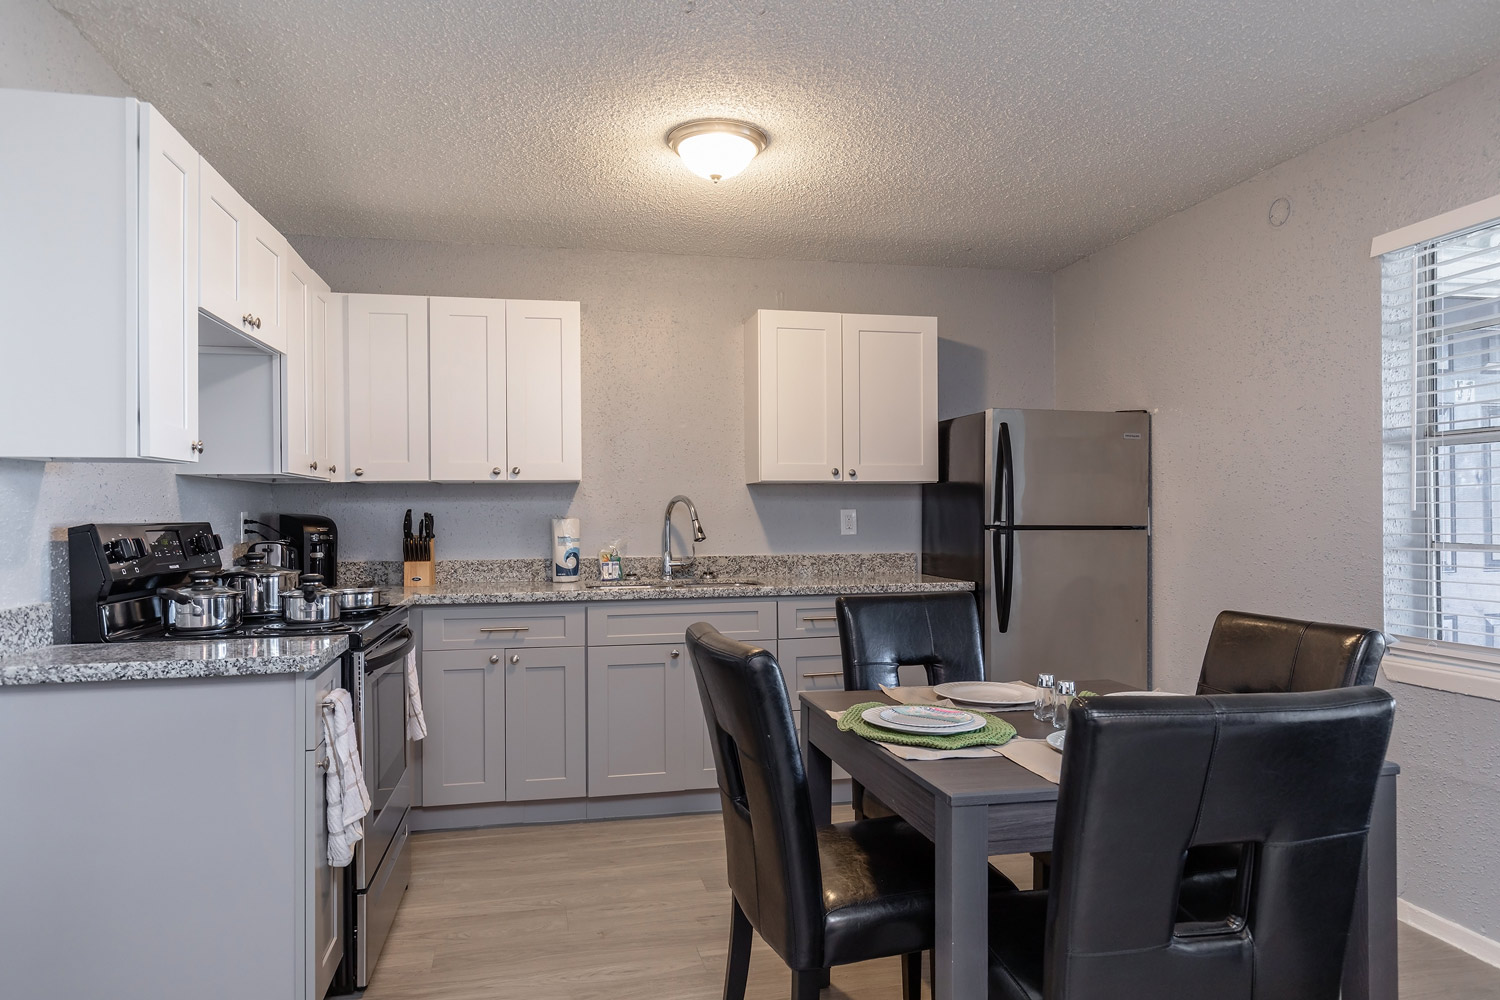 Stainless Steel Appliances at The Five Points at Texas Apartments in Texas City, Texas